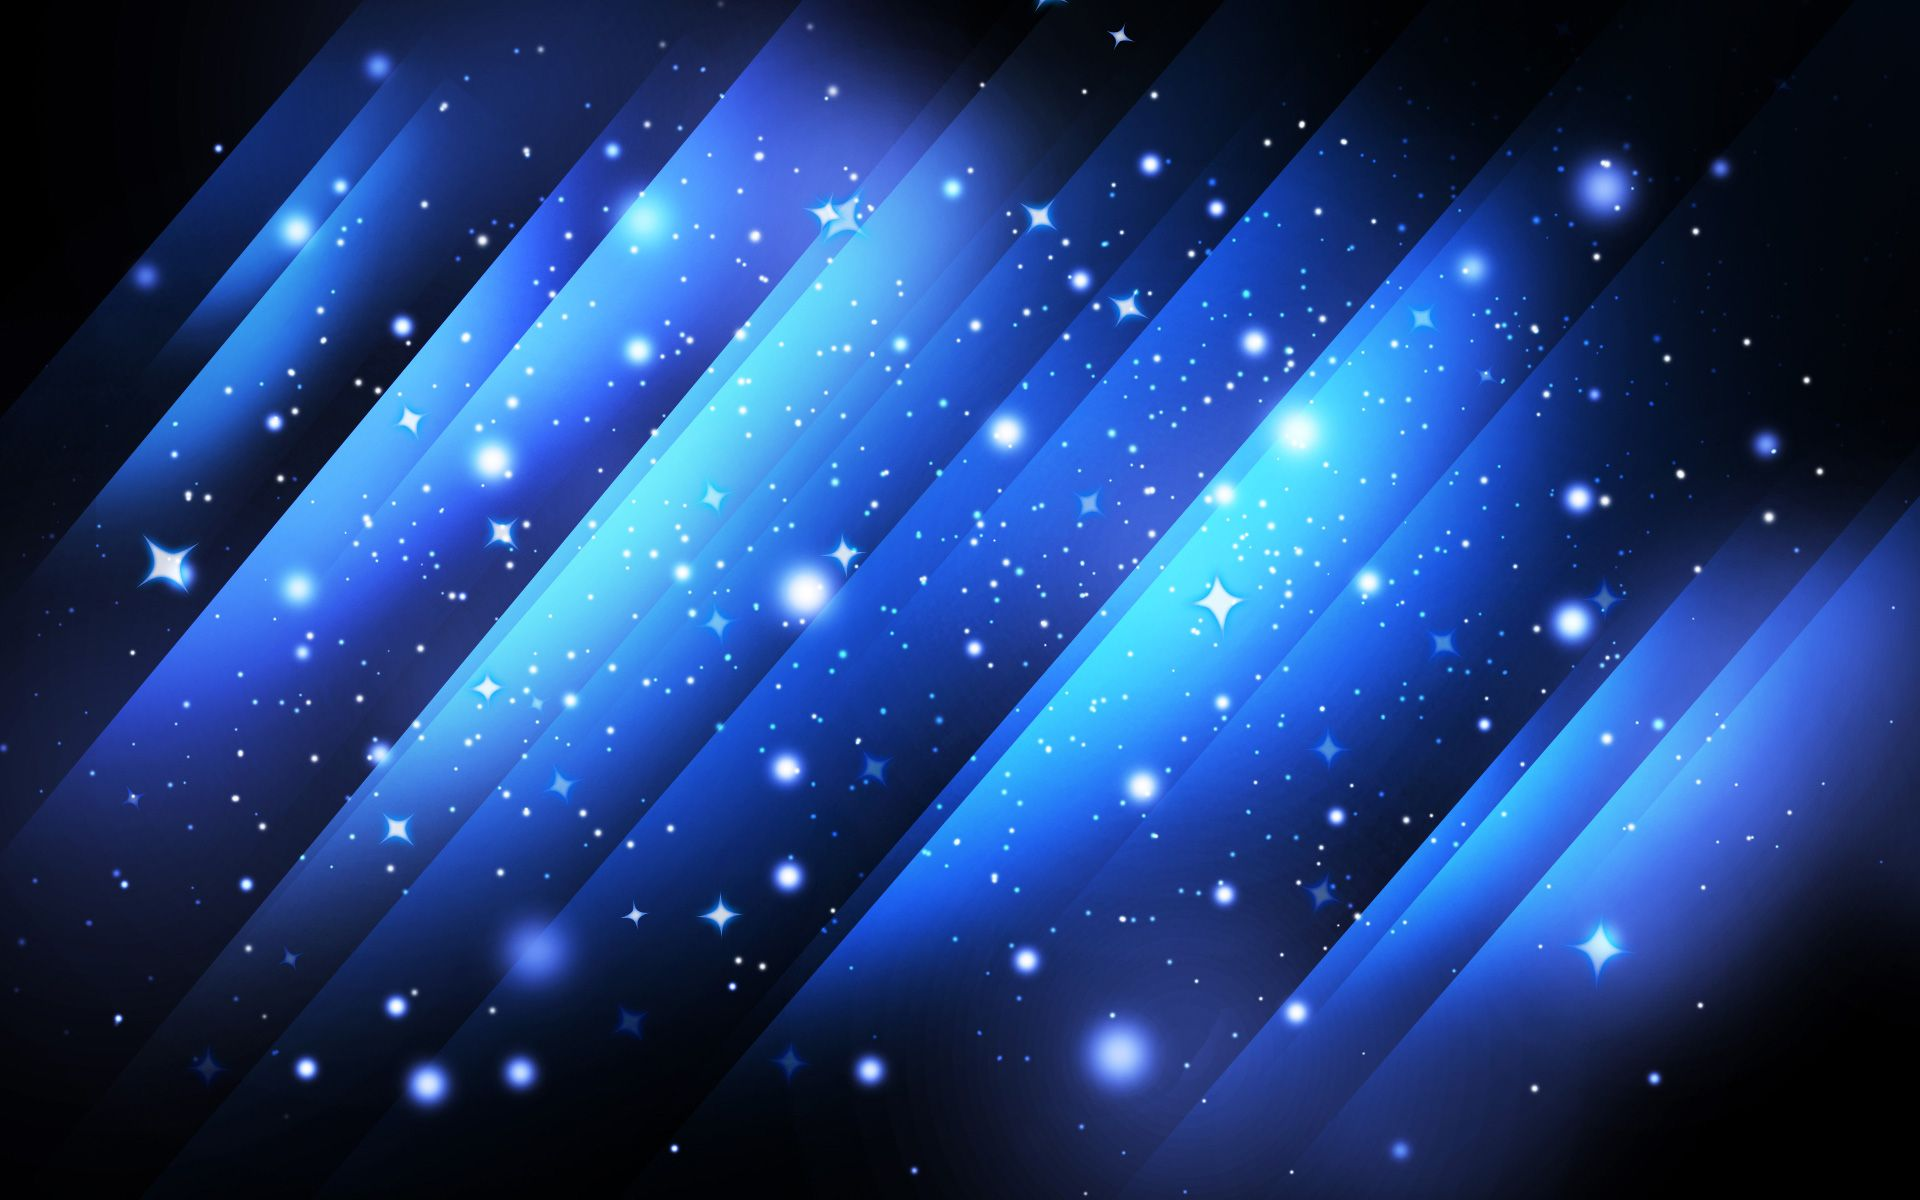 Wedding Backgrounds for Photoshop abstract starfield background 1920x1200